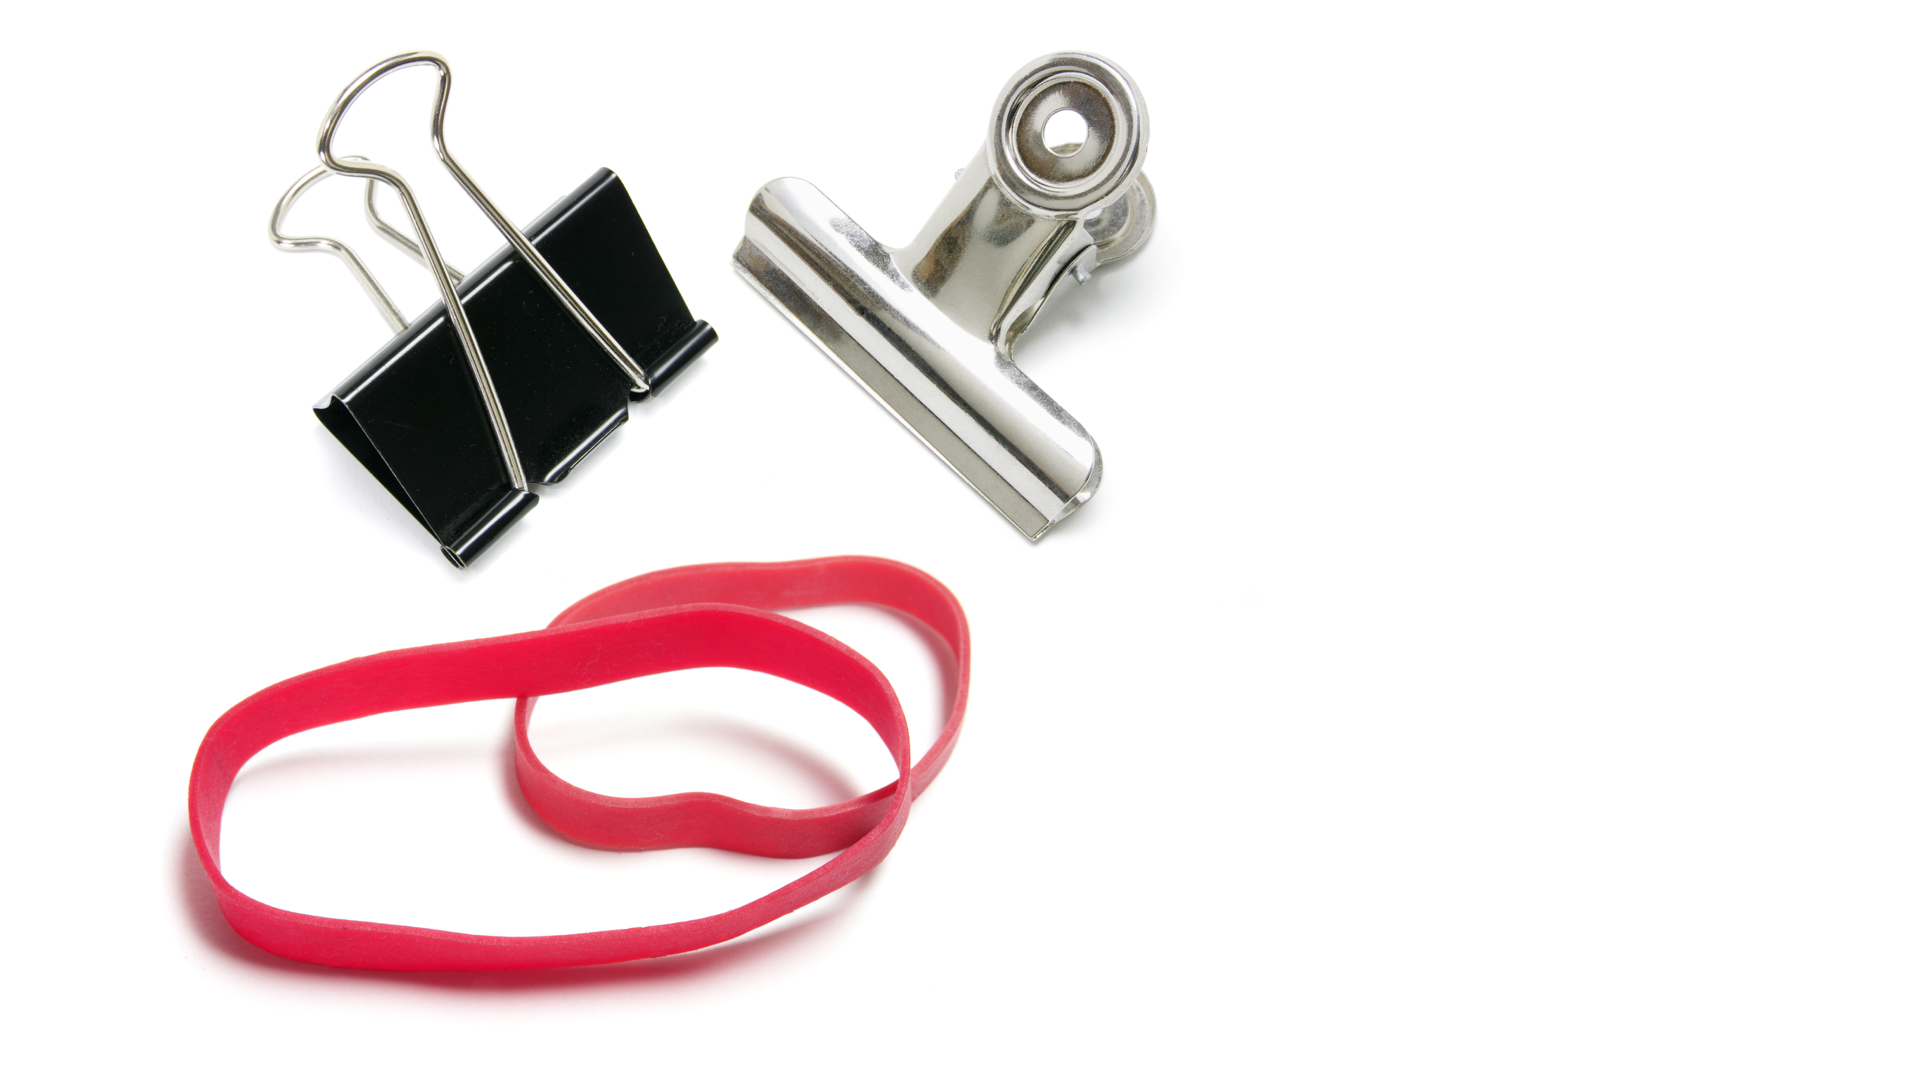 slide: two bulldog clips and a rubber band